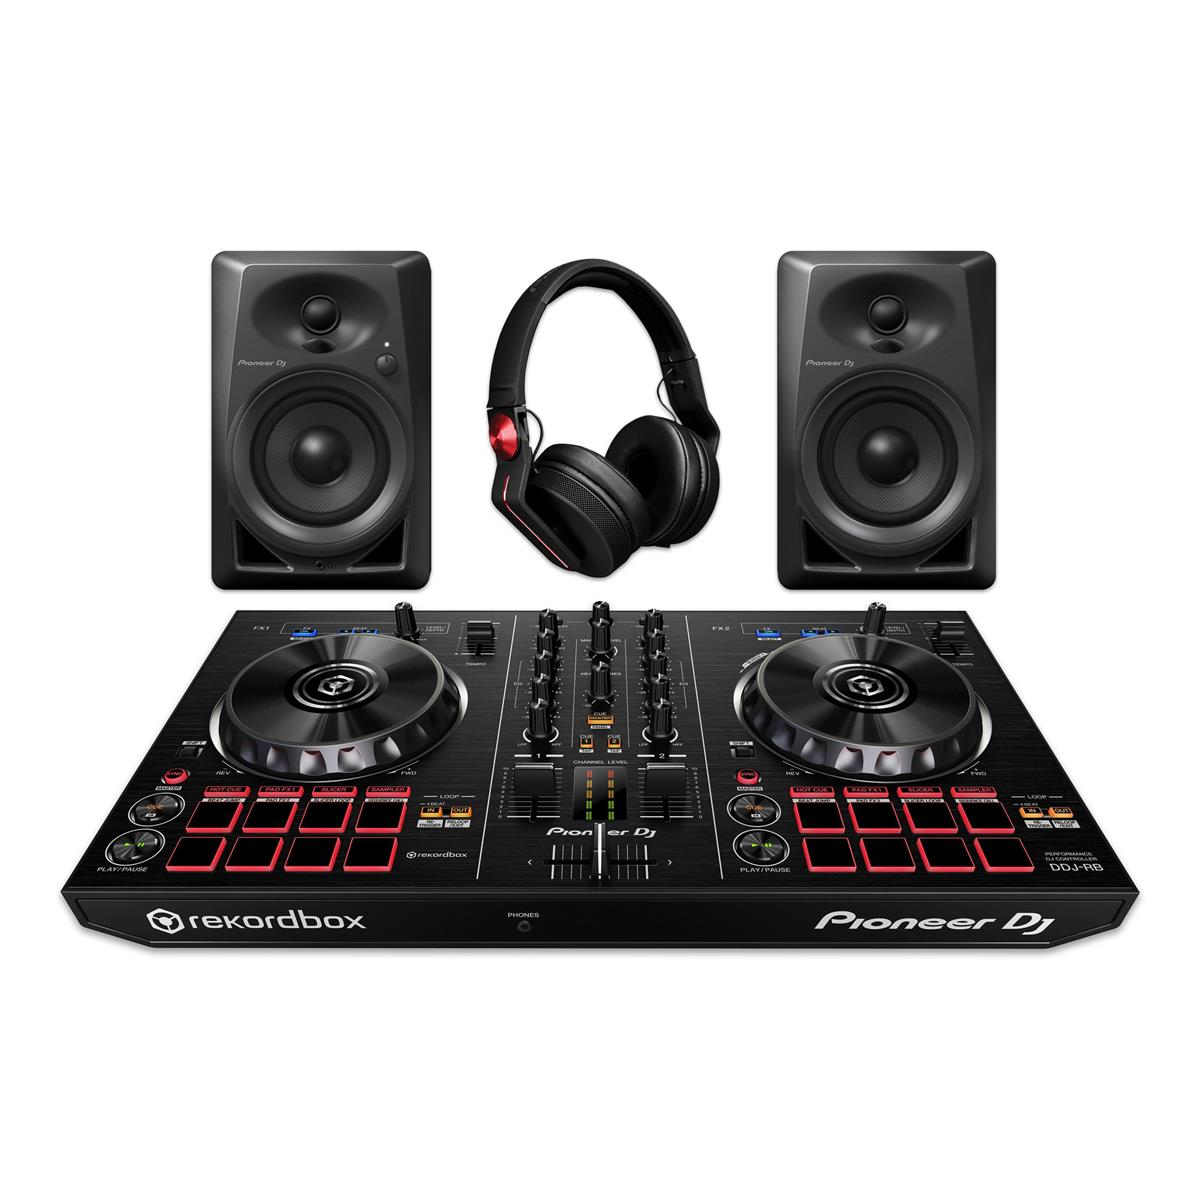 PIONEER DJ STARTER PACK CONSOLLE + MONITOR + CUFFIE